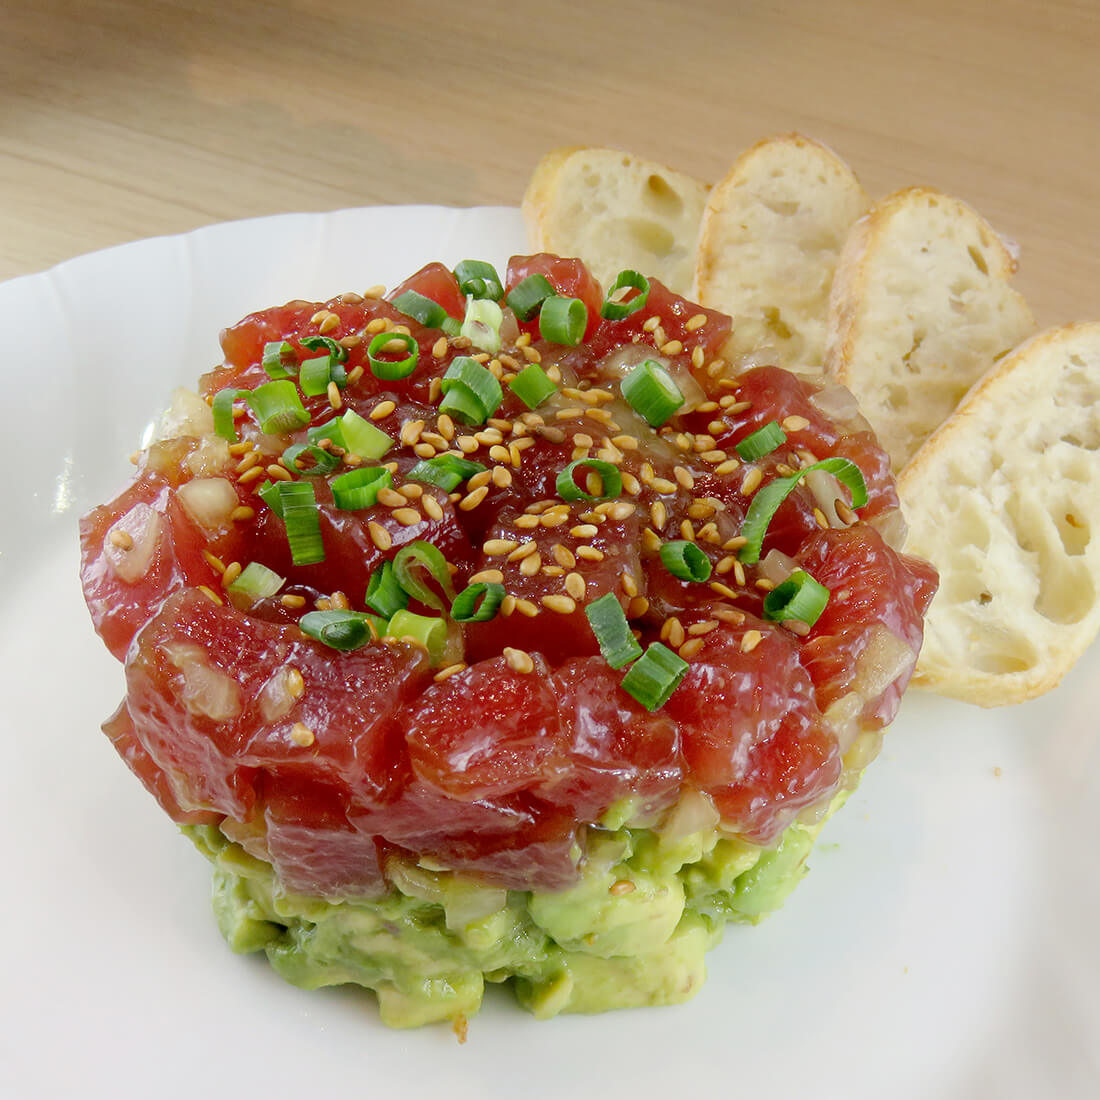 Tartare of tuna and avocado